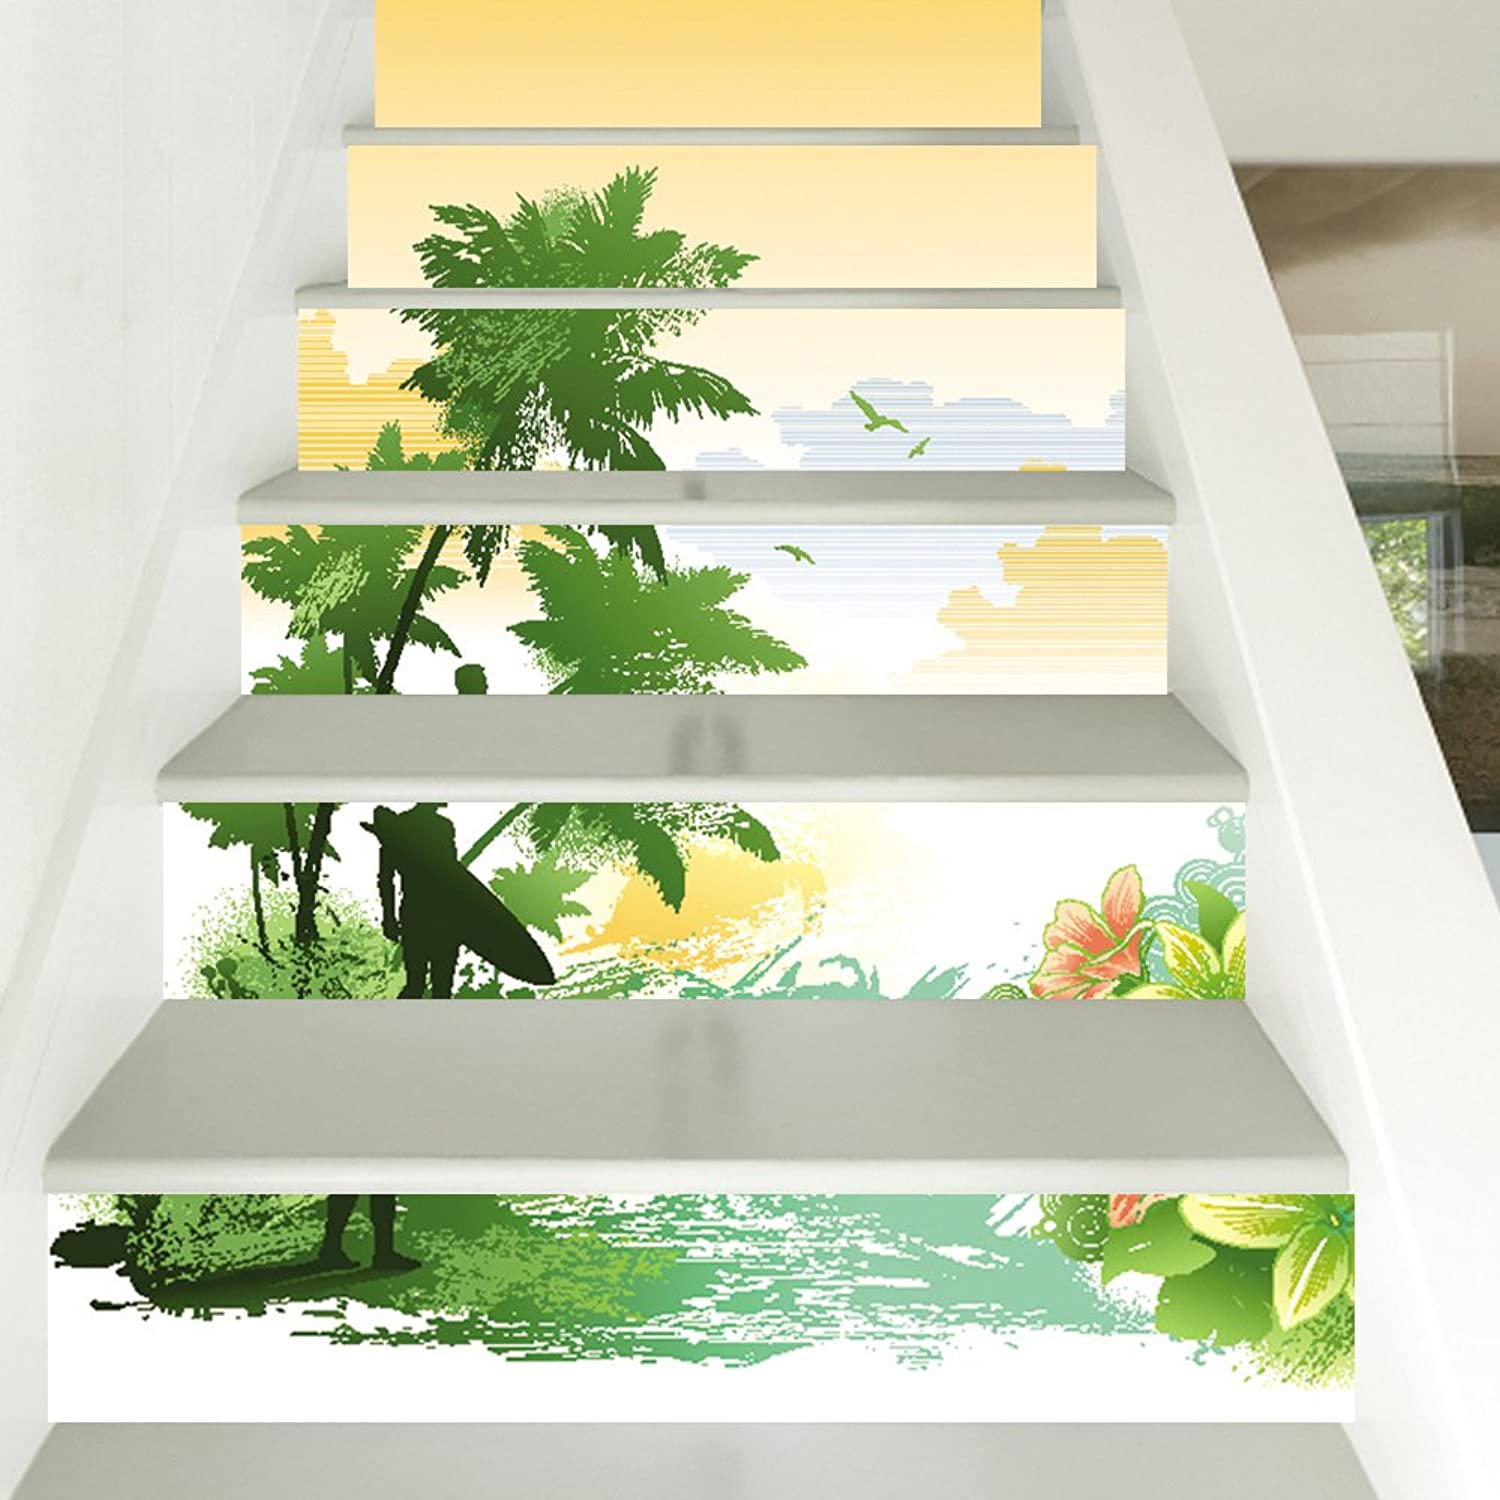 Stairs Wallpaper self-Adhesive Modern Style Beach Coconut Home Decoration 3D Detachable DIY Steps Stickers Modern HD Waterproof Buy Three get one Free